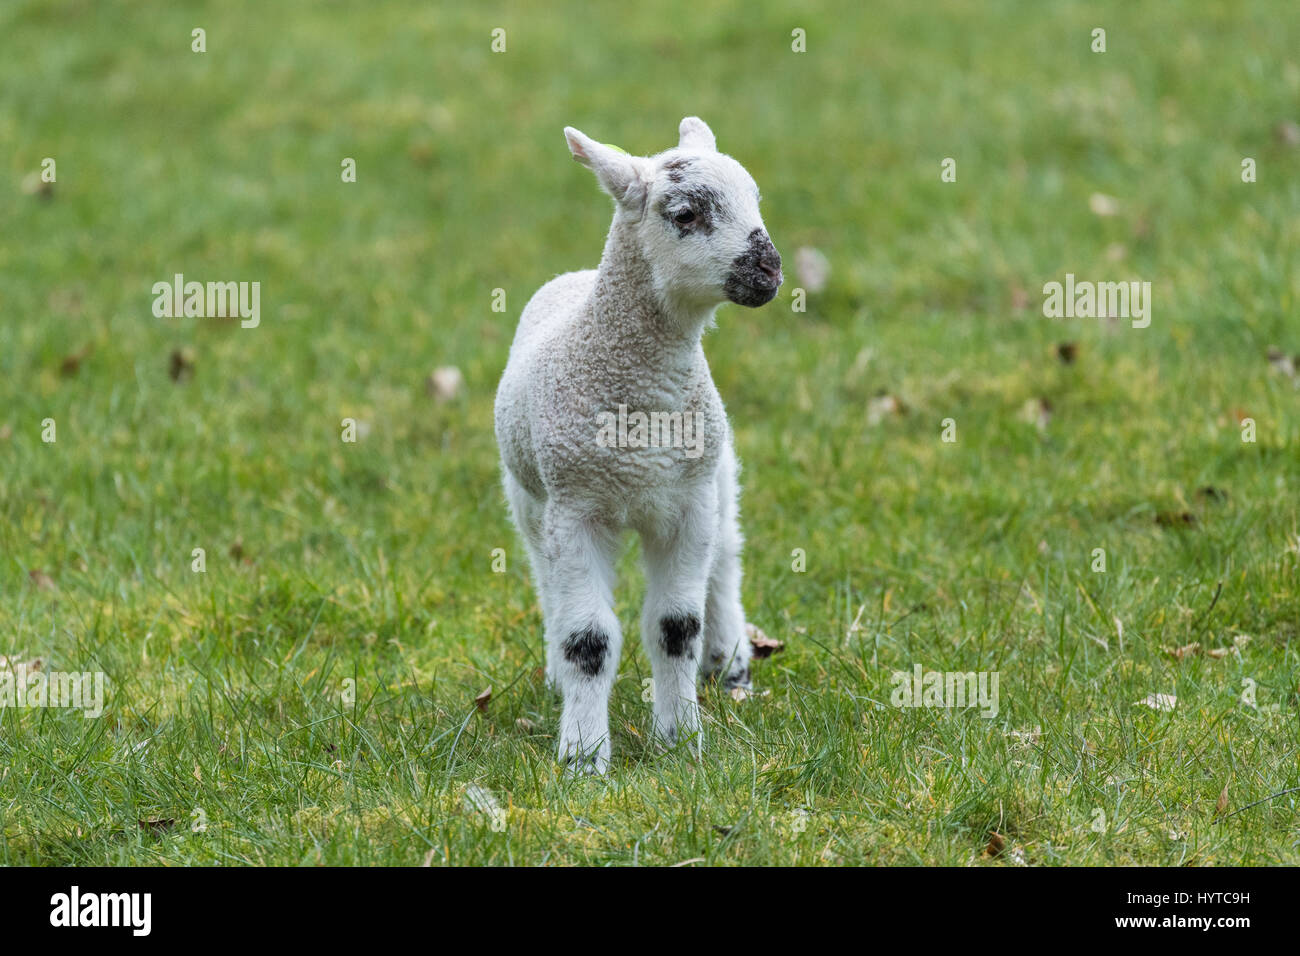 Single, tiny, cute lamb standing alone in a farm field, in springtime. Its ears are back and it appears vulnerable - Stock Image